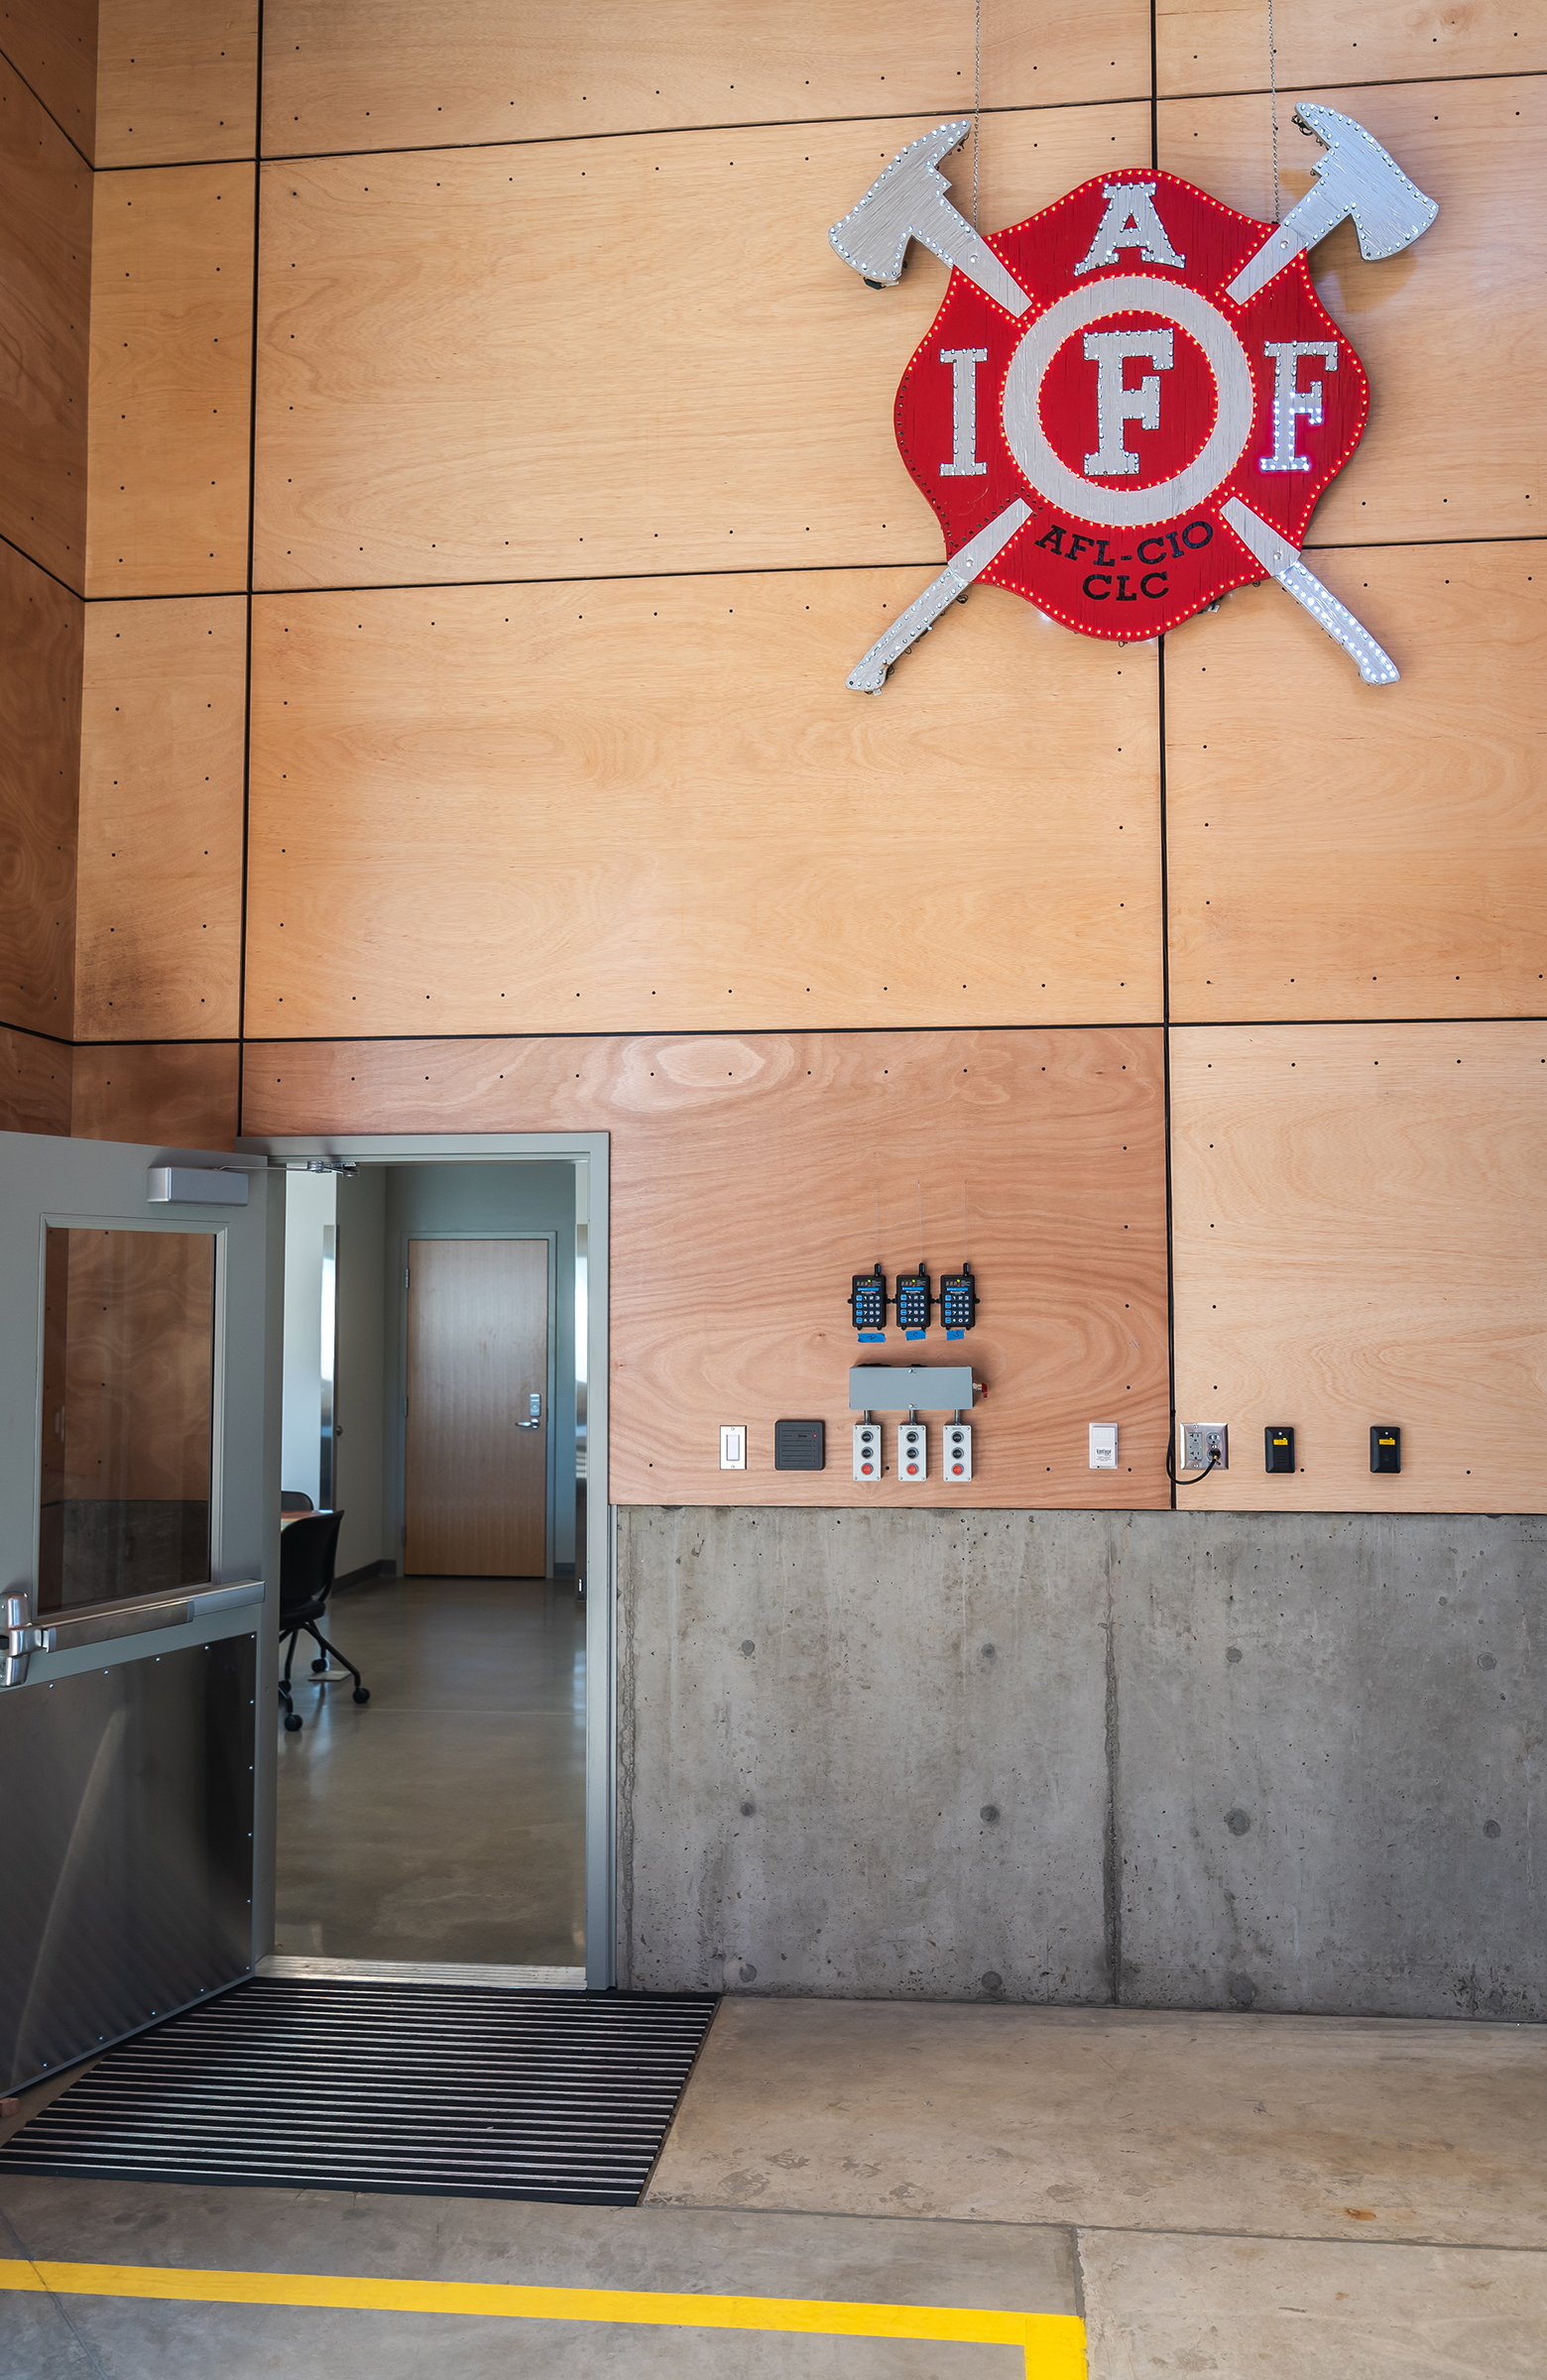 CFD - Station 19 - edited-5a.jpg